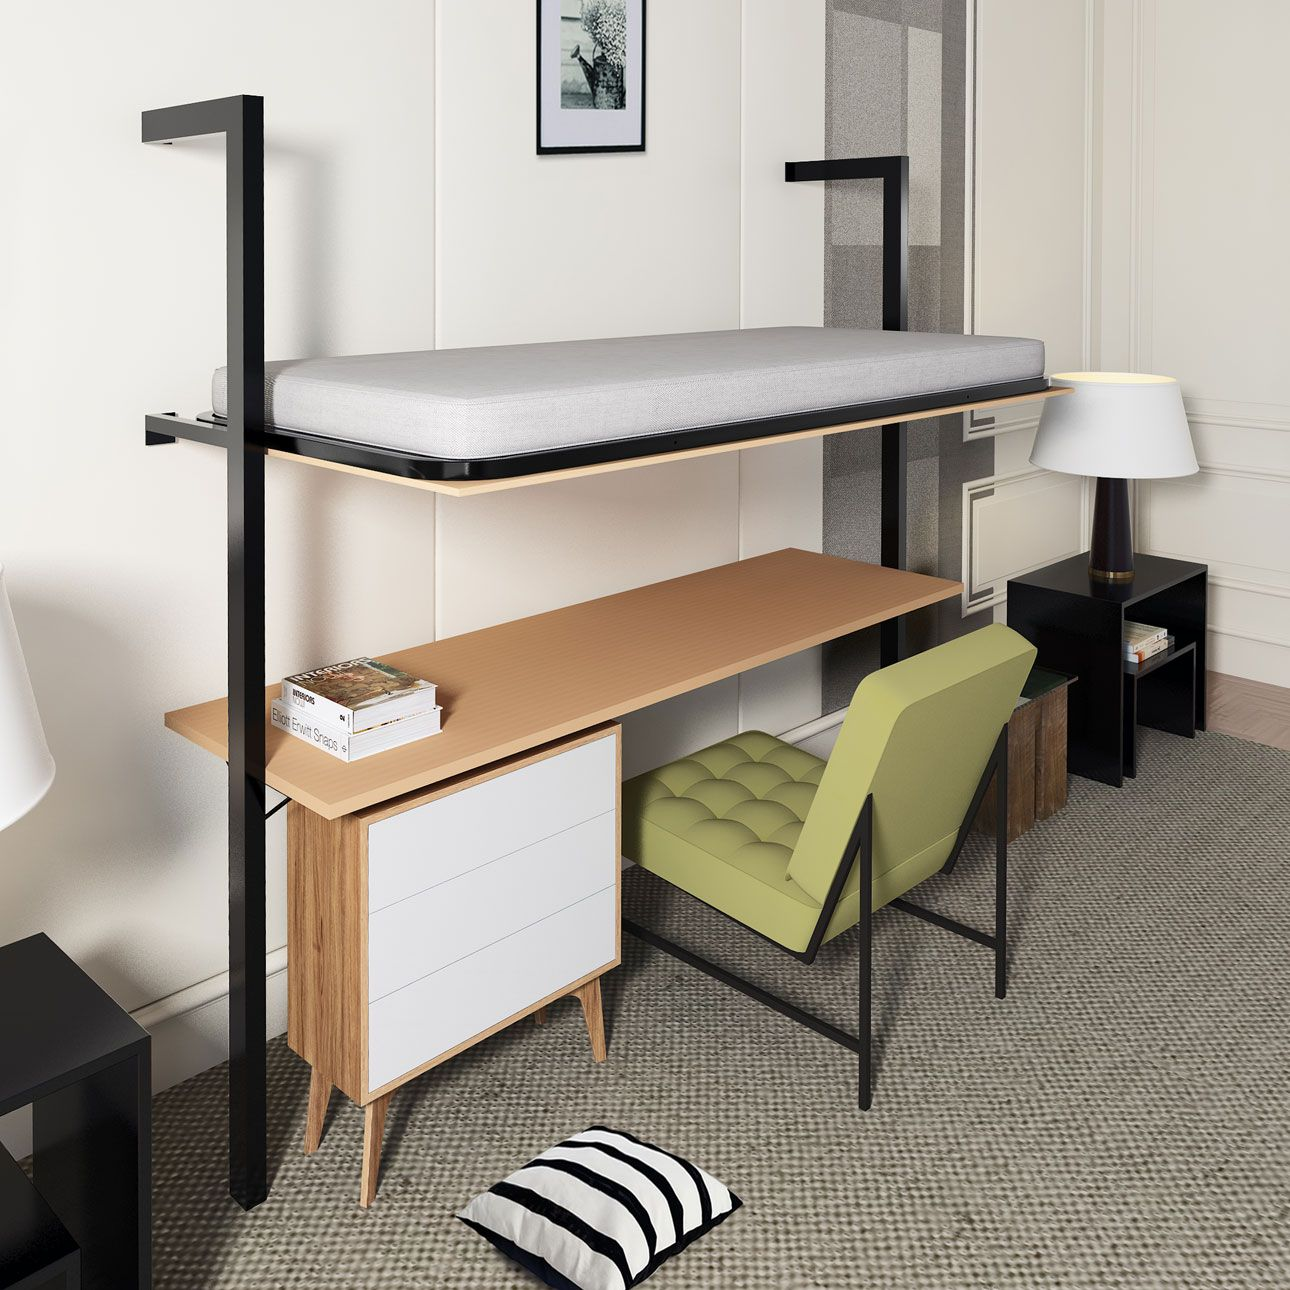 Olyan Horizontal Wall Upper Bed with desk Bed desk